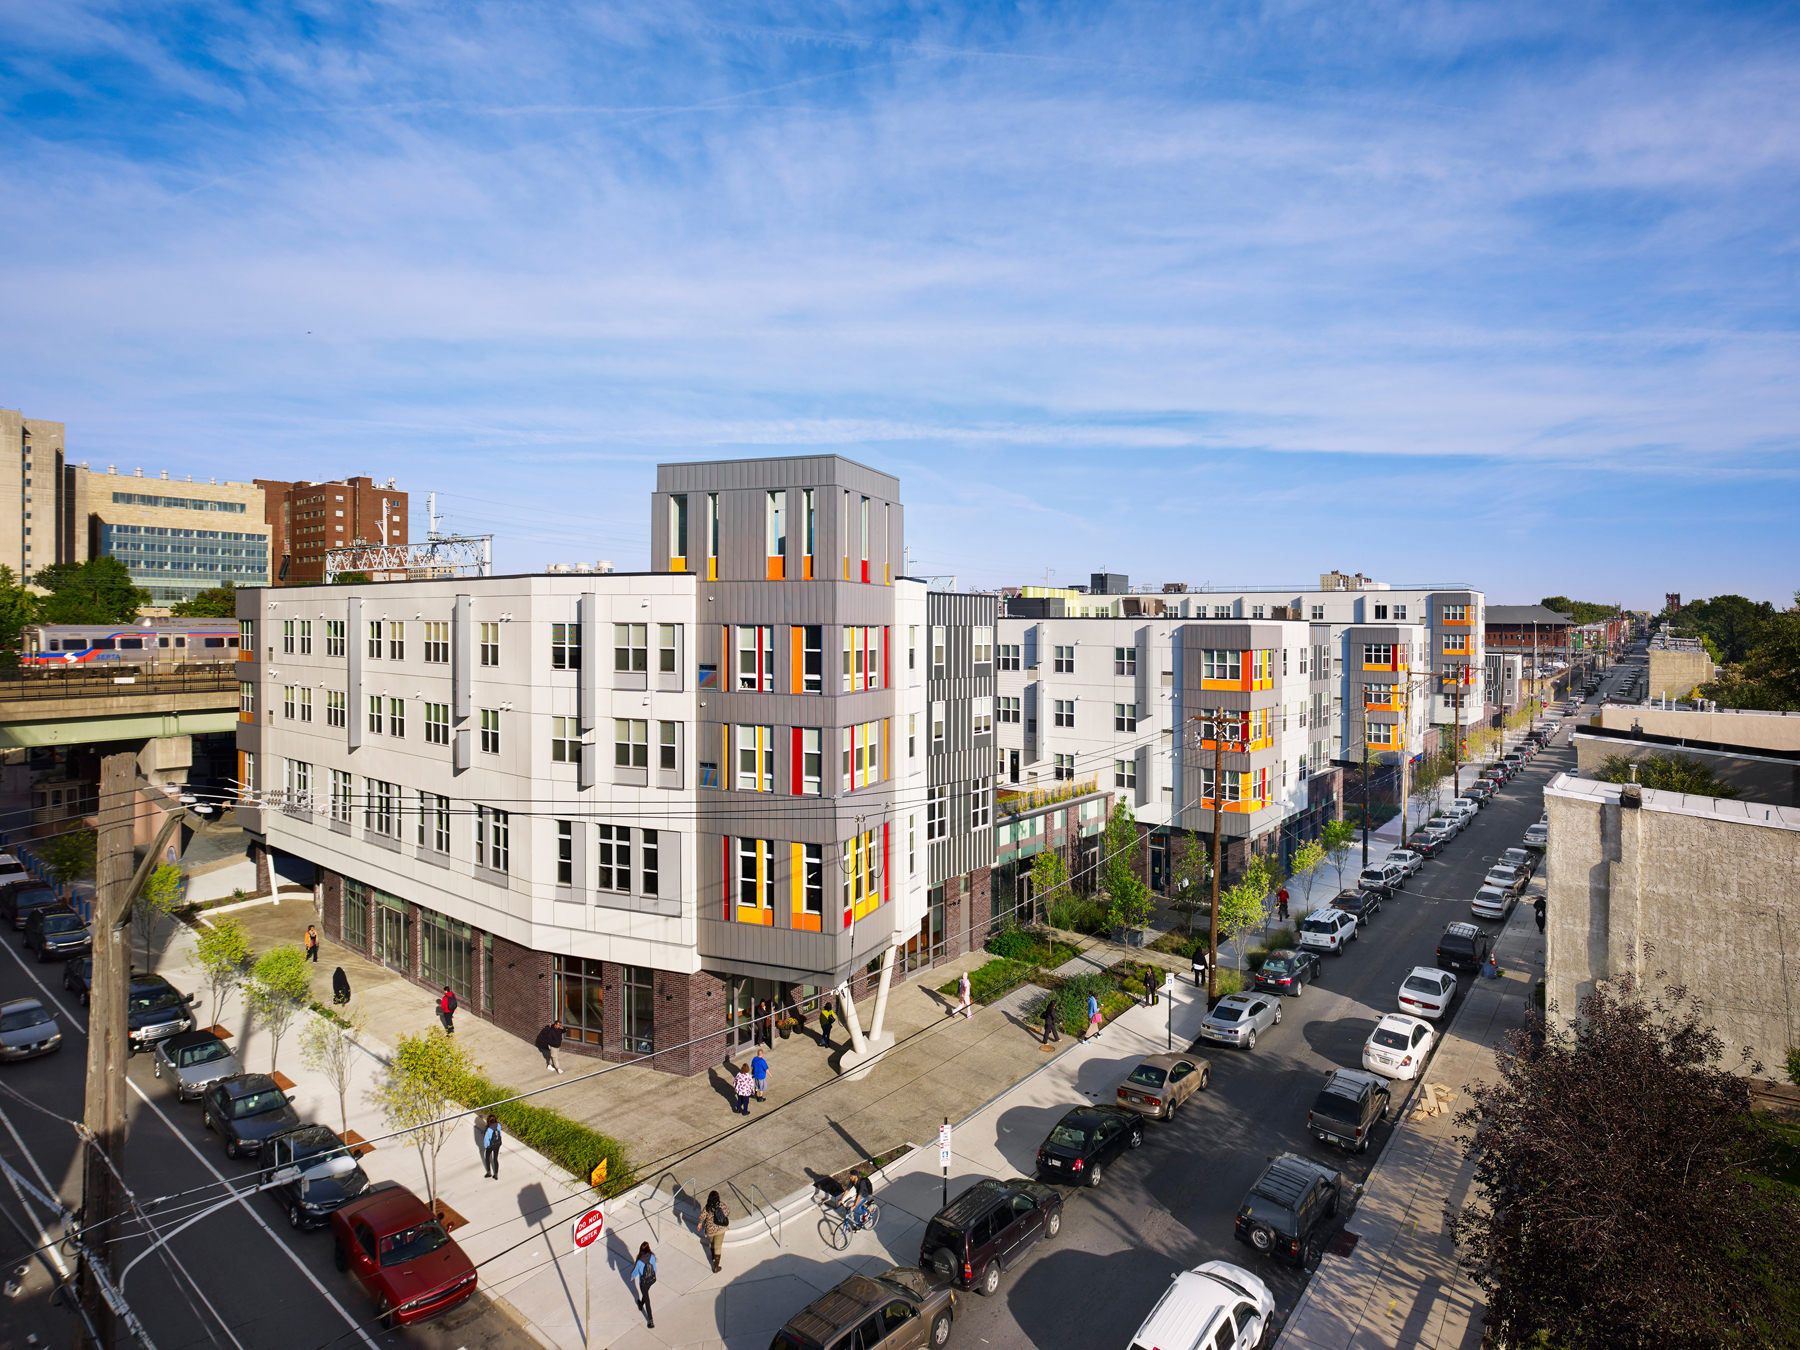 Solving affordable housing Creative solutions around the US